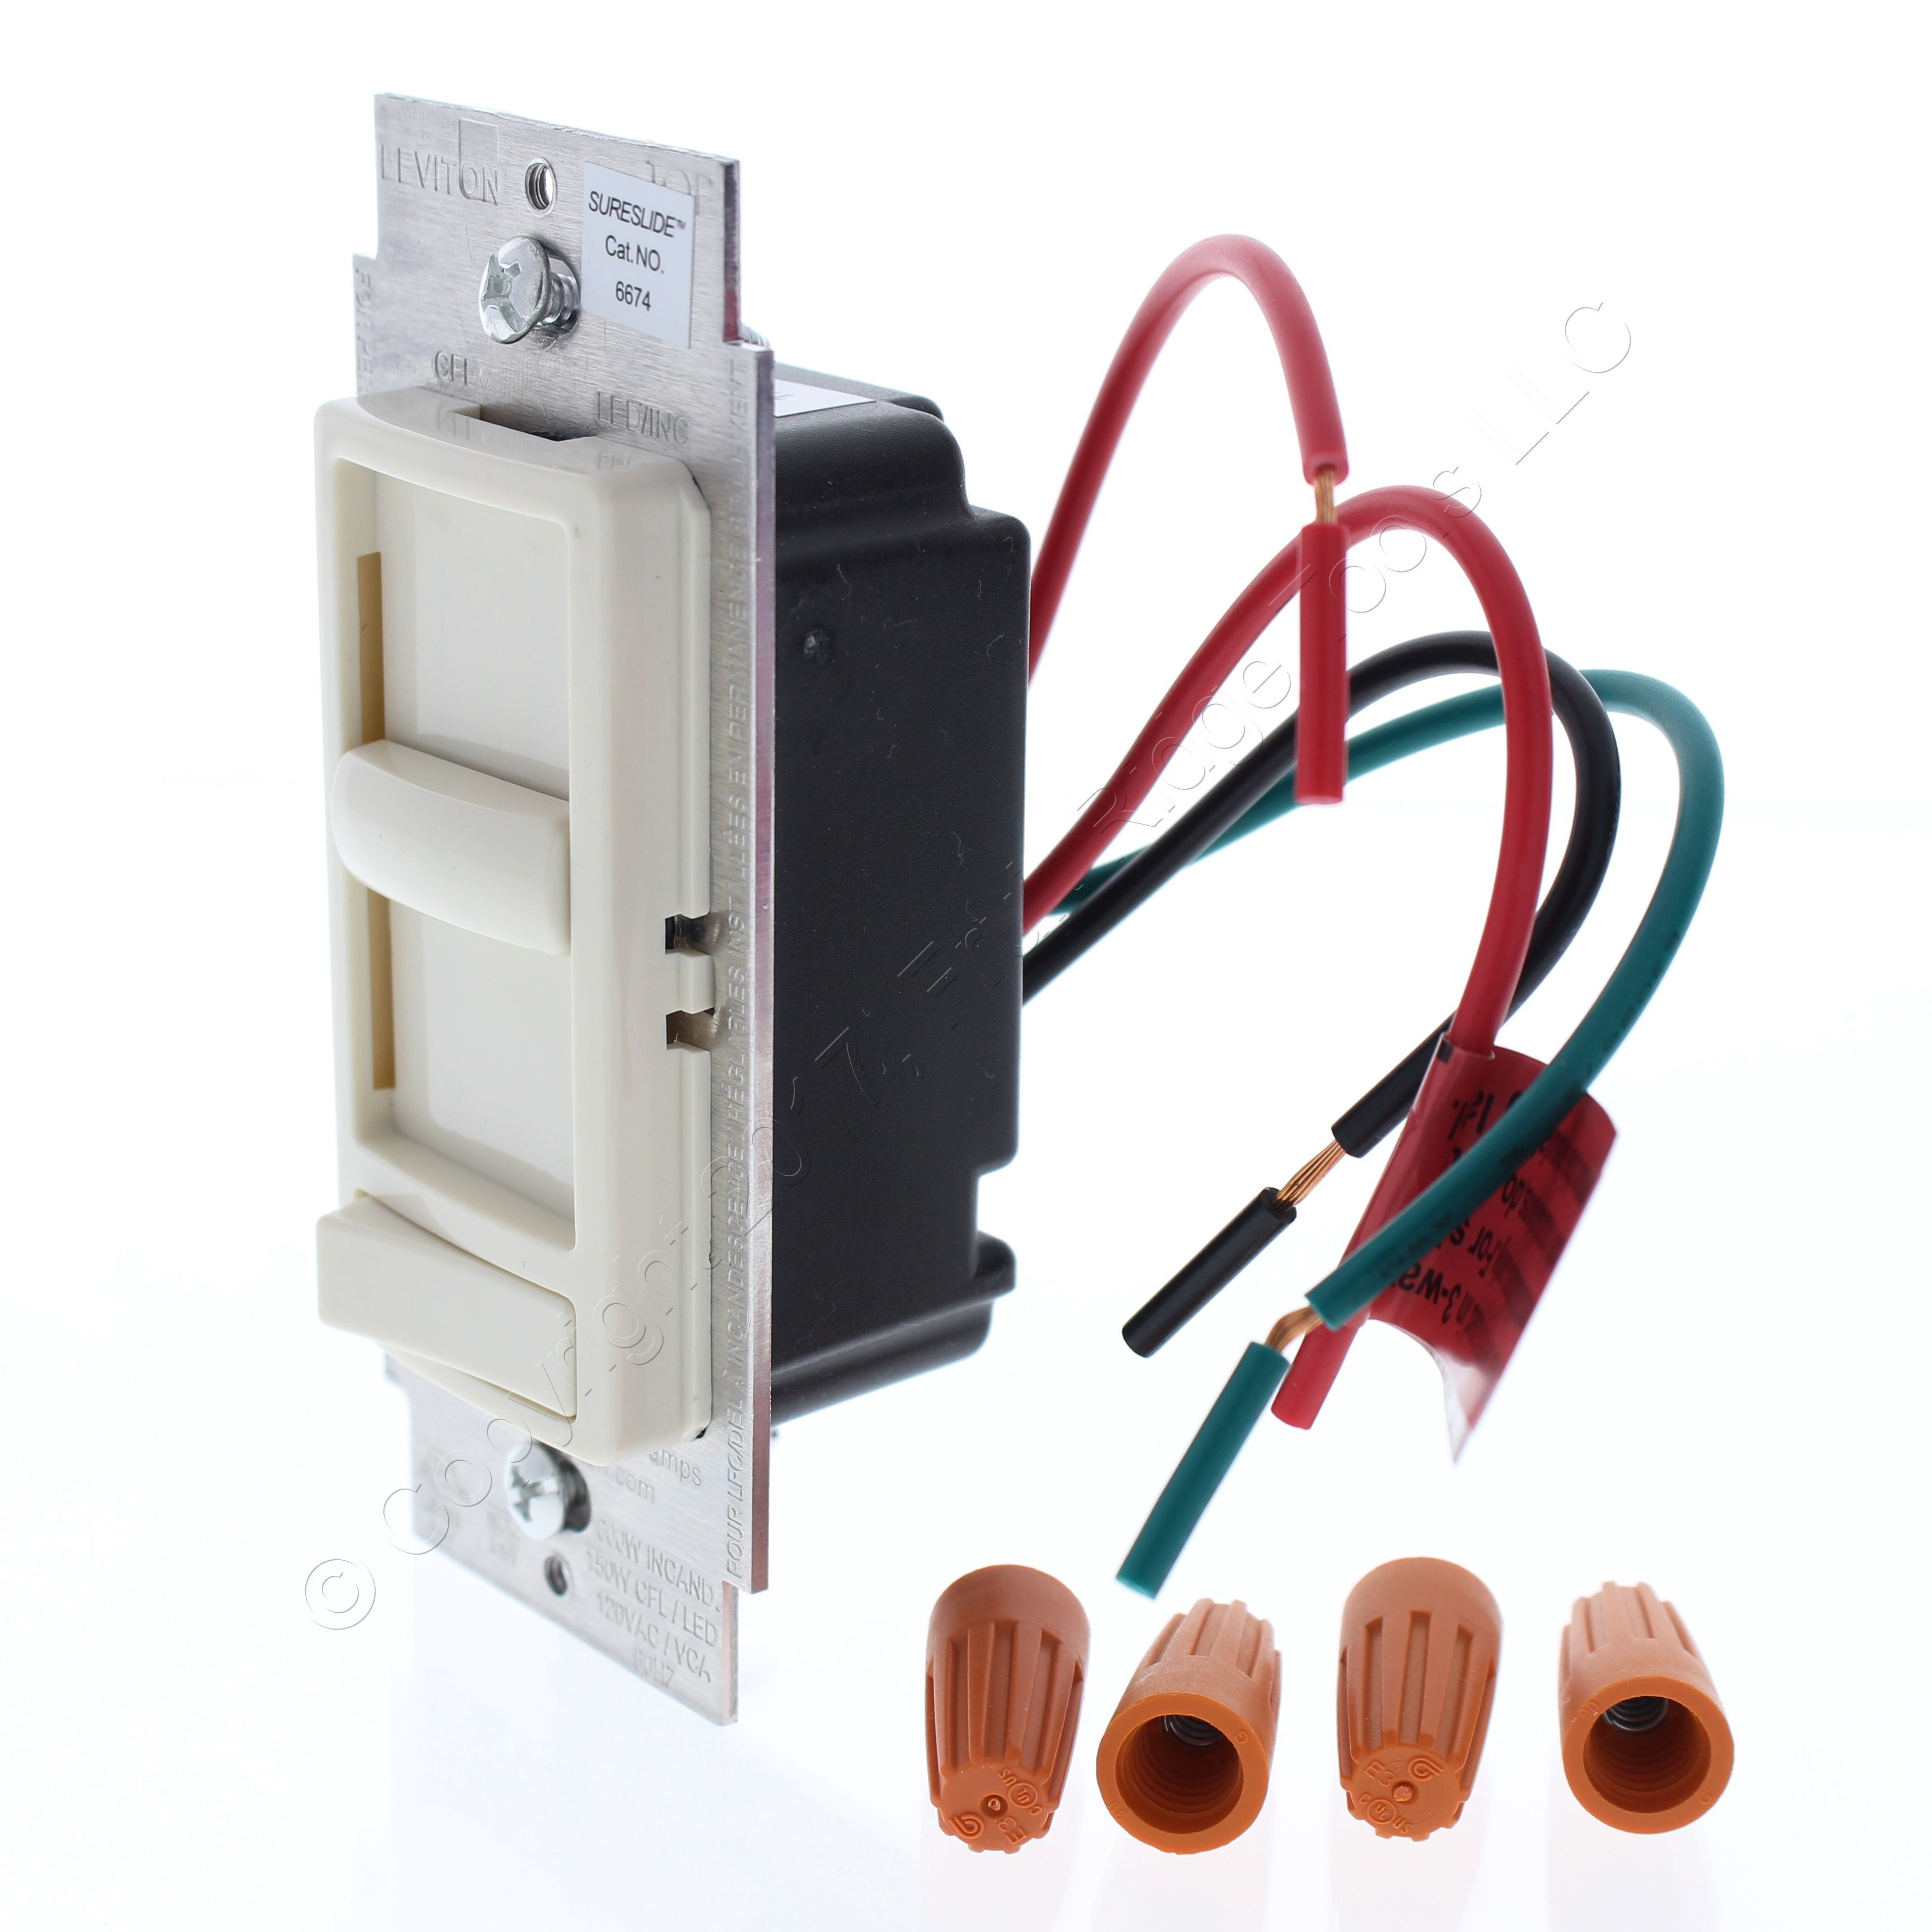 Exelent Leviton 9454 Gift - Wiring Diagram Ideas - guapodugh.com